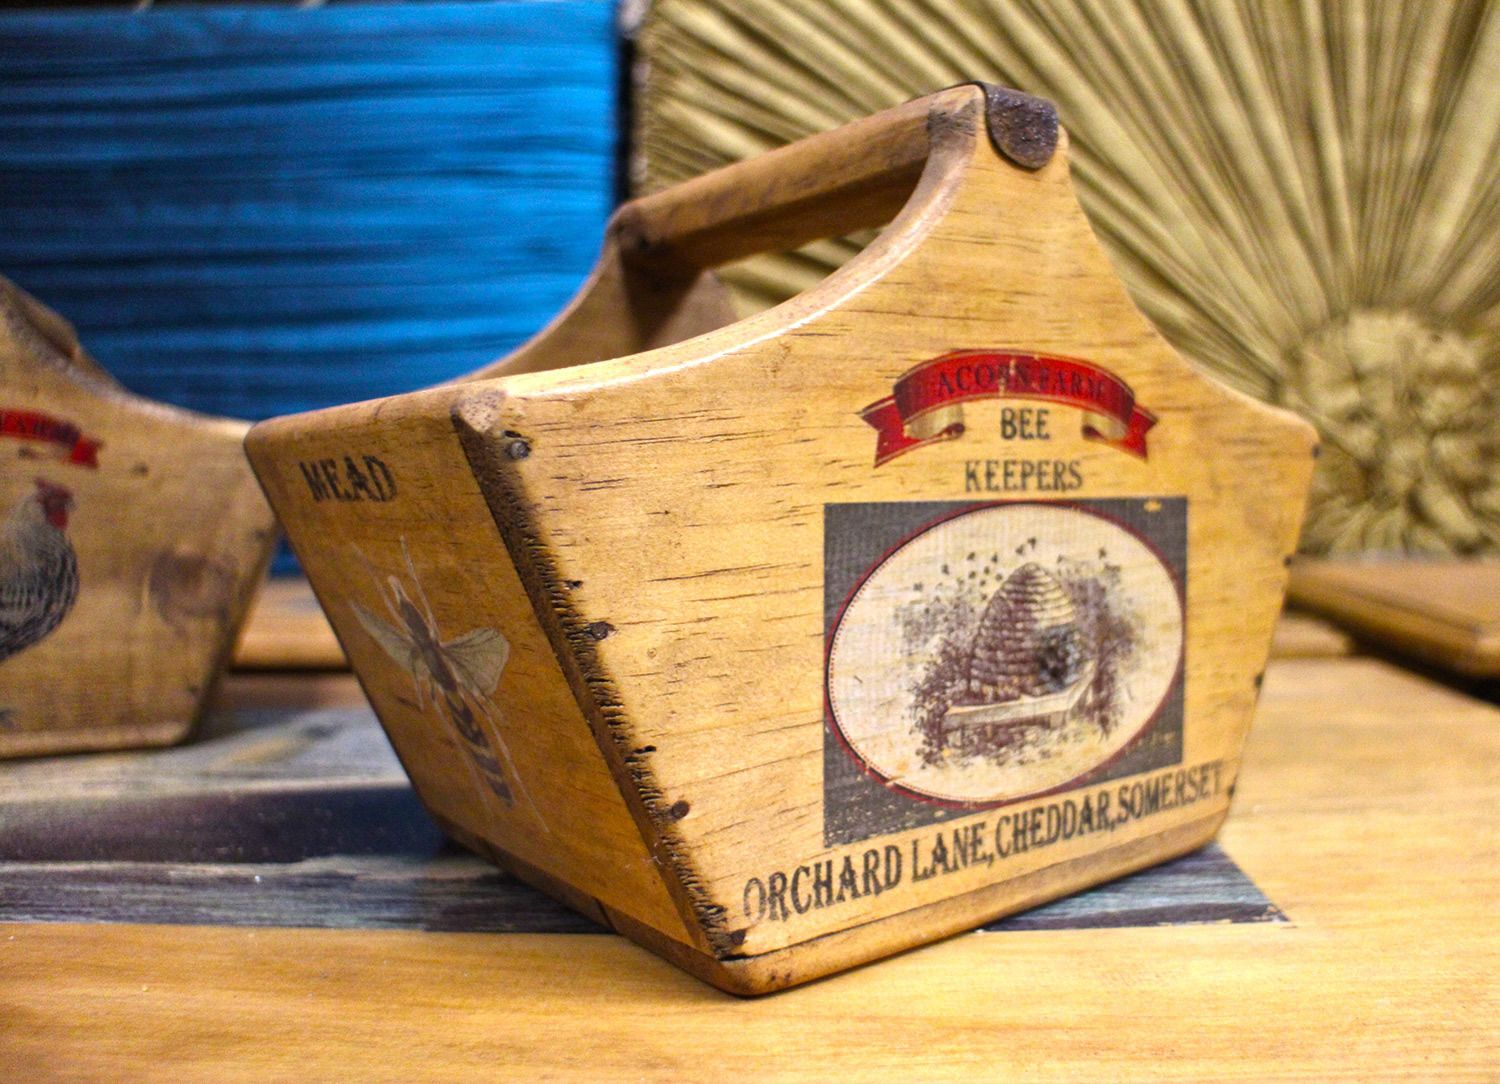 Rustic Wooden Honey Crate Vintage Box Bee Keepers Acorn Farm Cheddar